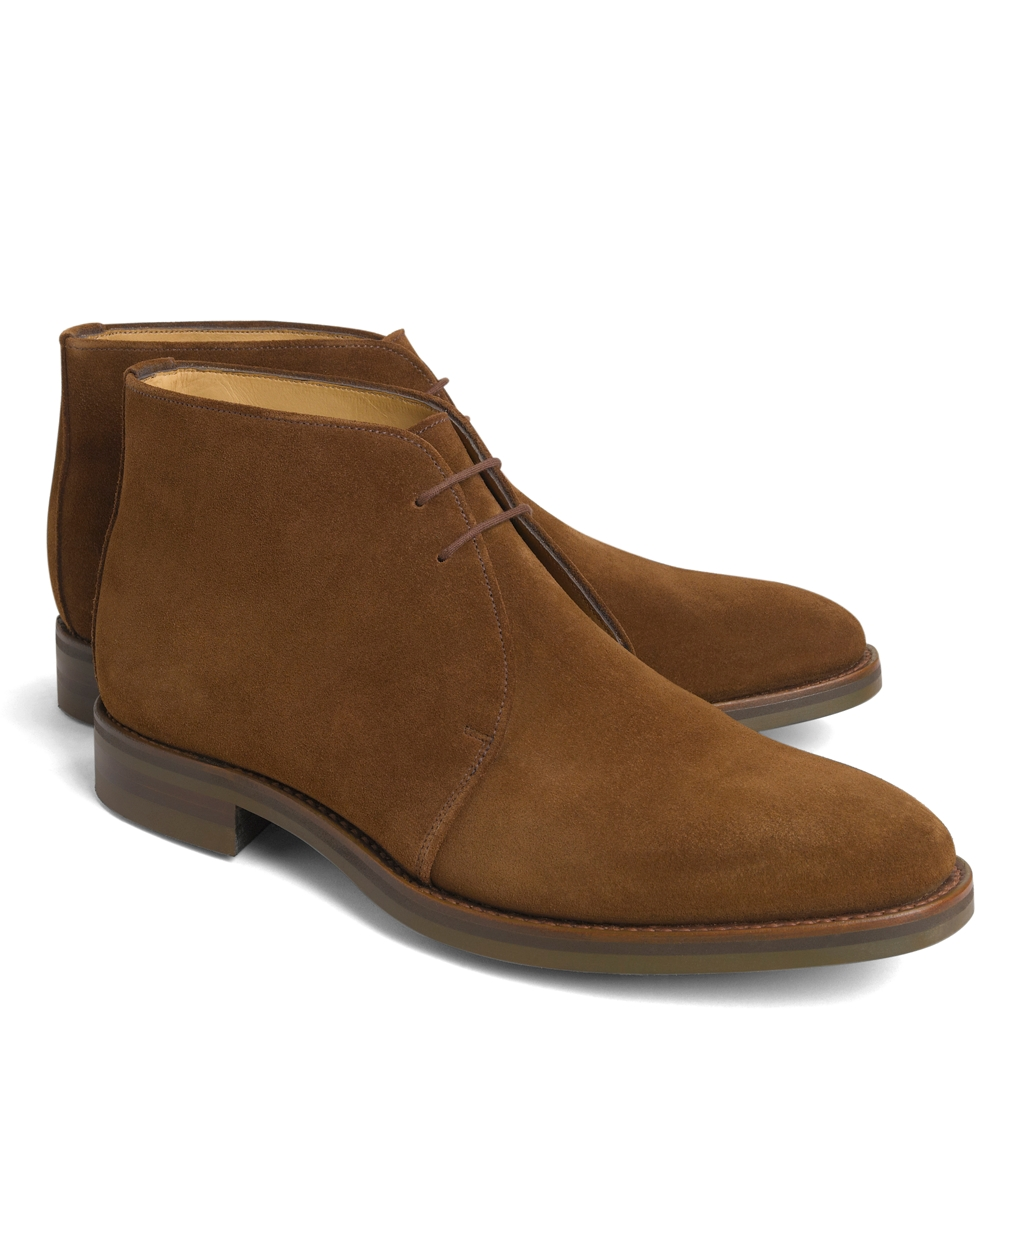 9ee4e18a14b Lyst - Brooks Brothers Peal   Co.® Chukka Boots in Brown for Men